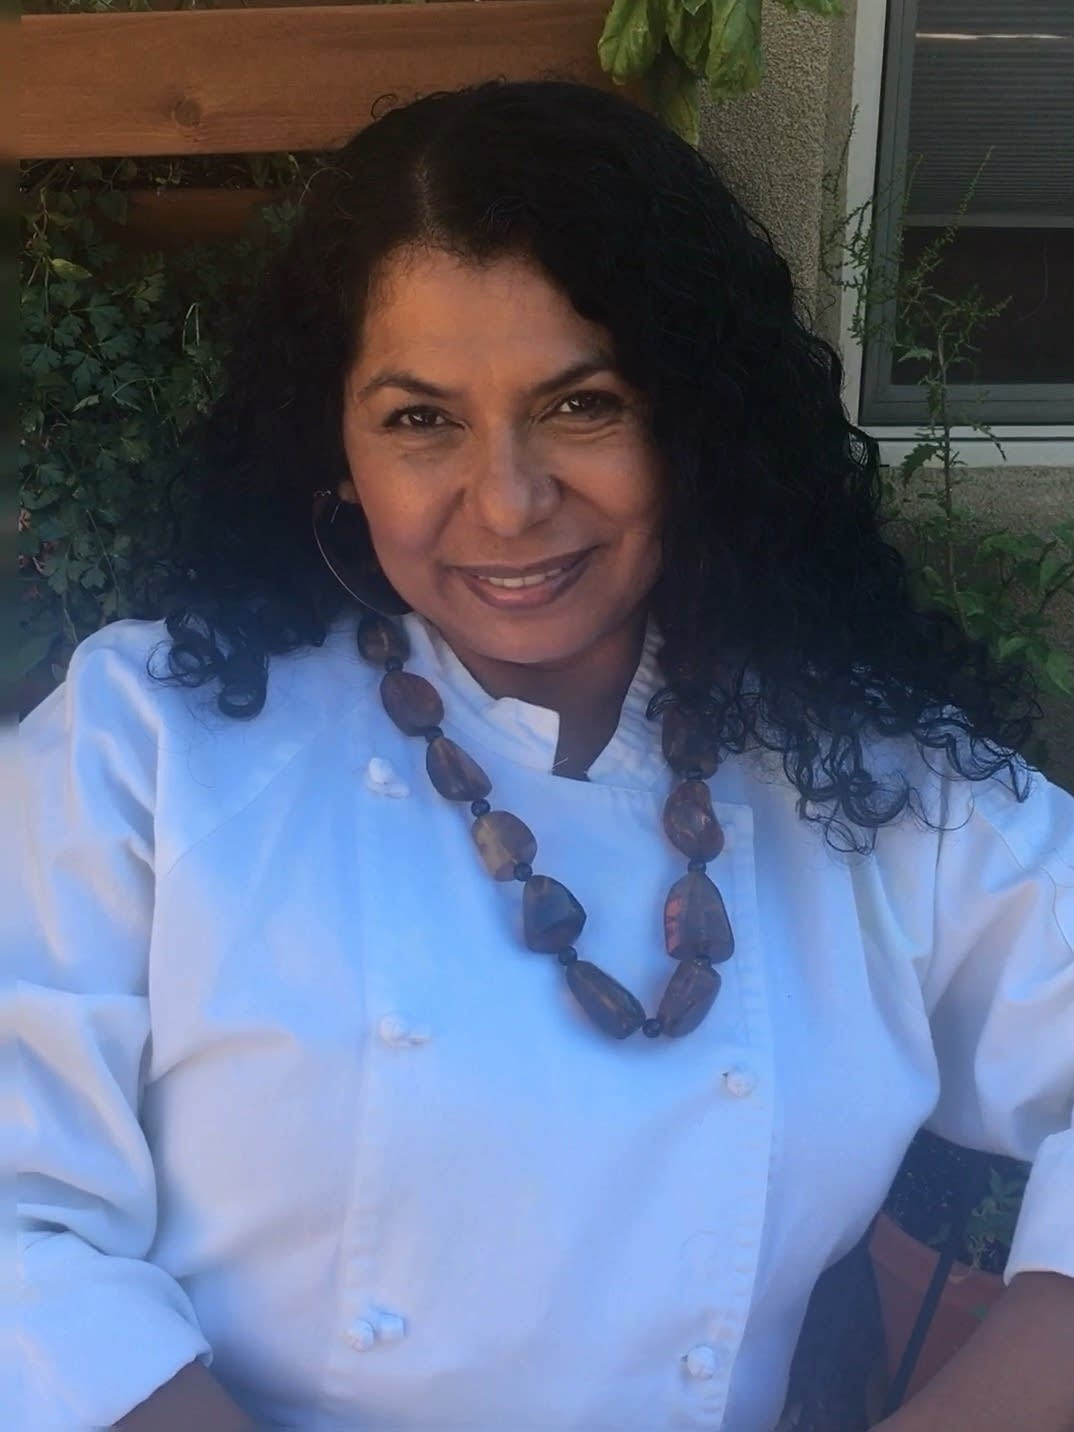 Chef Dora Careaga